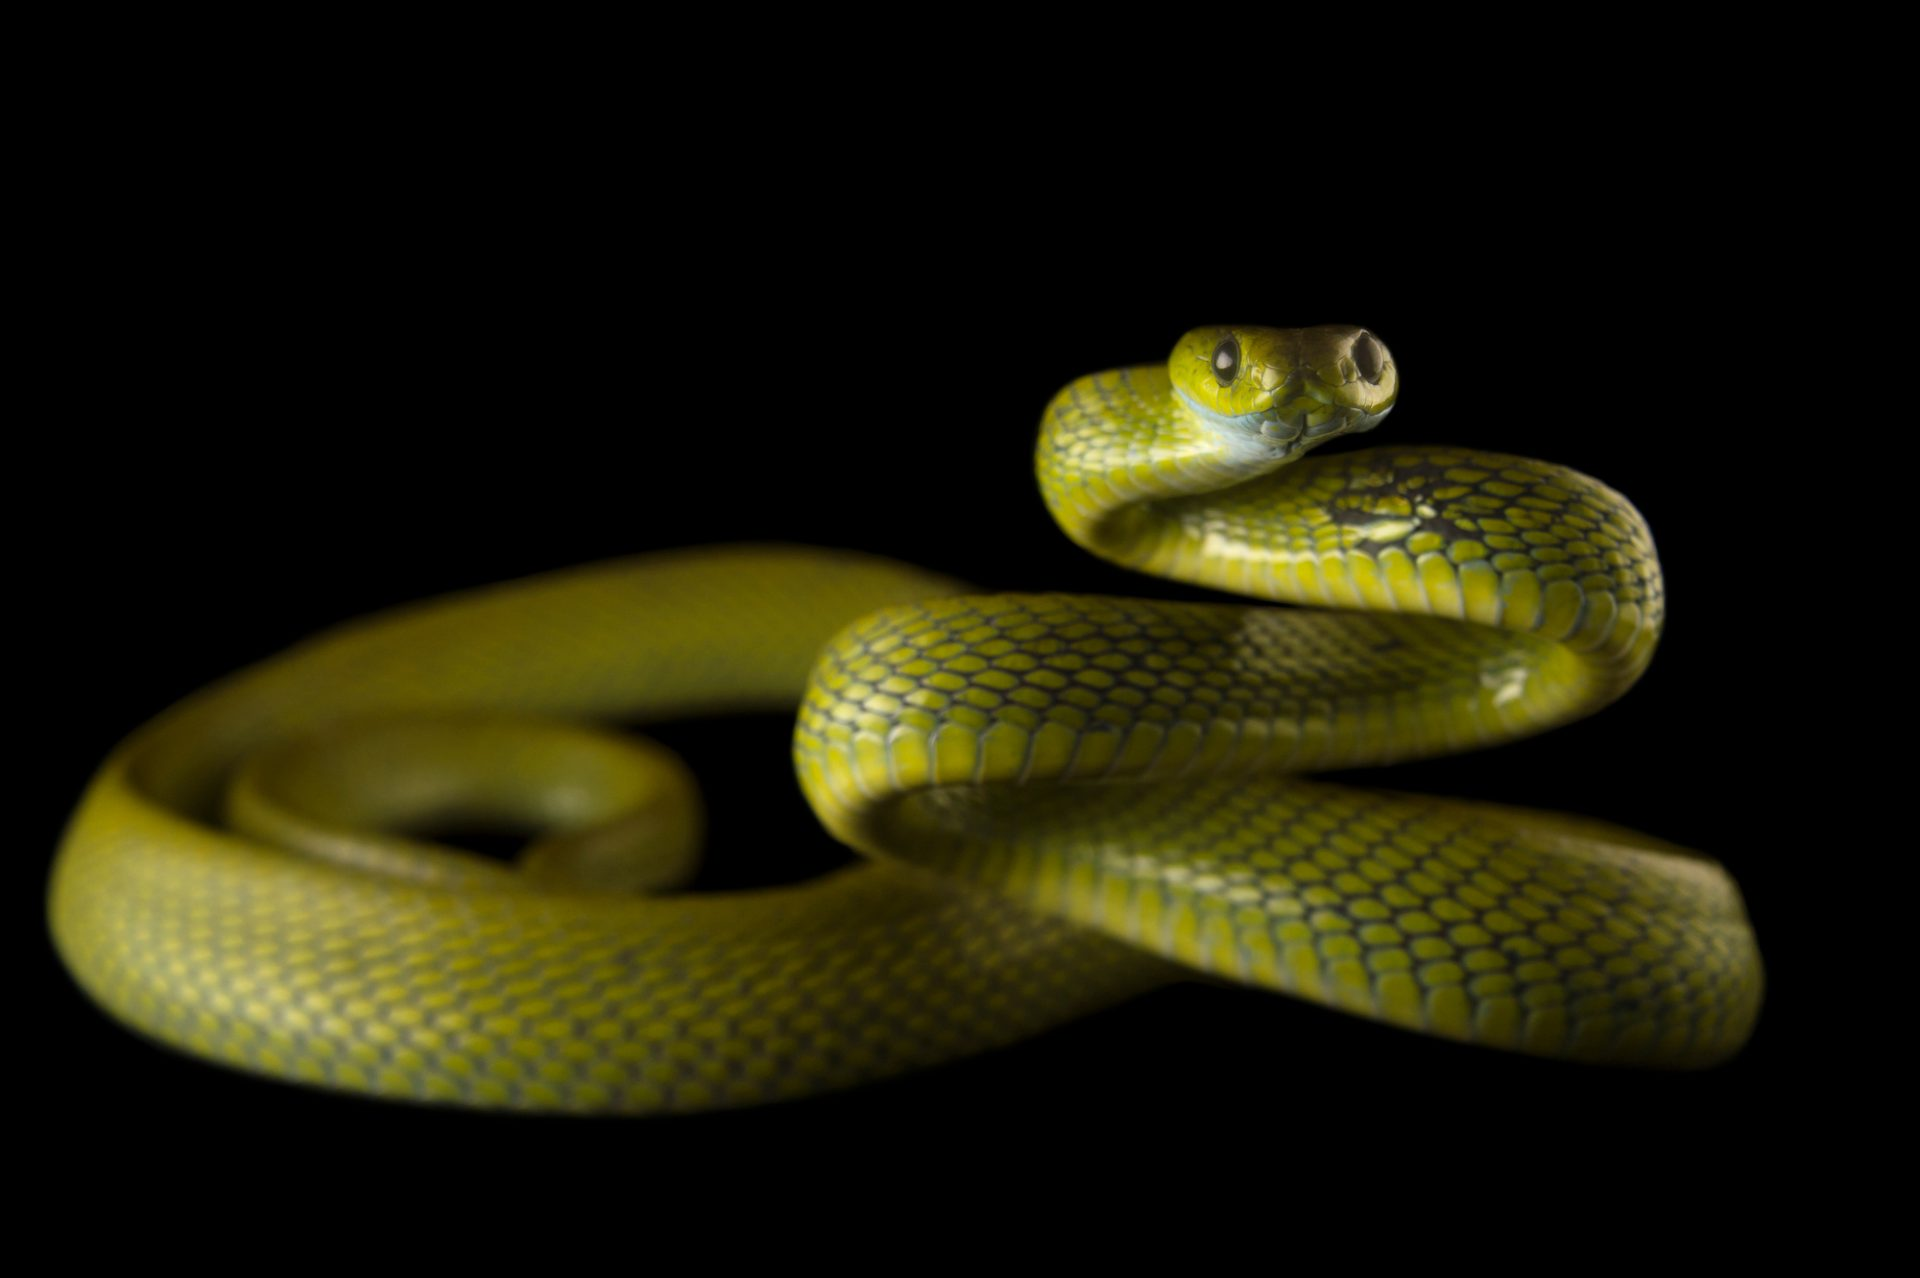 Photo: Green cat snake, Boiga cyena, at the Assam State Zoo in Guwahati, Assam, India.